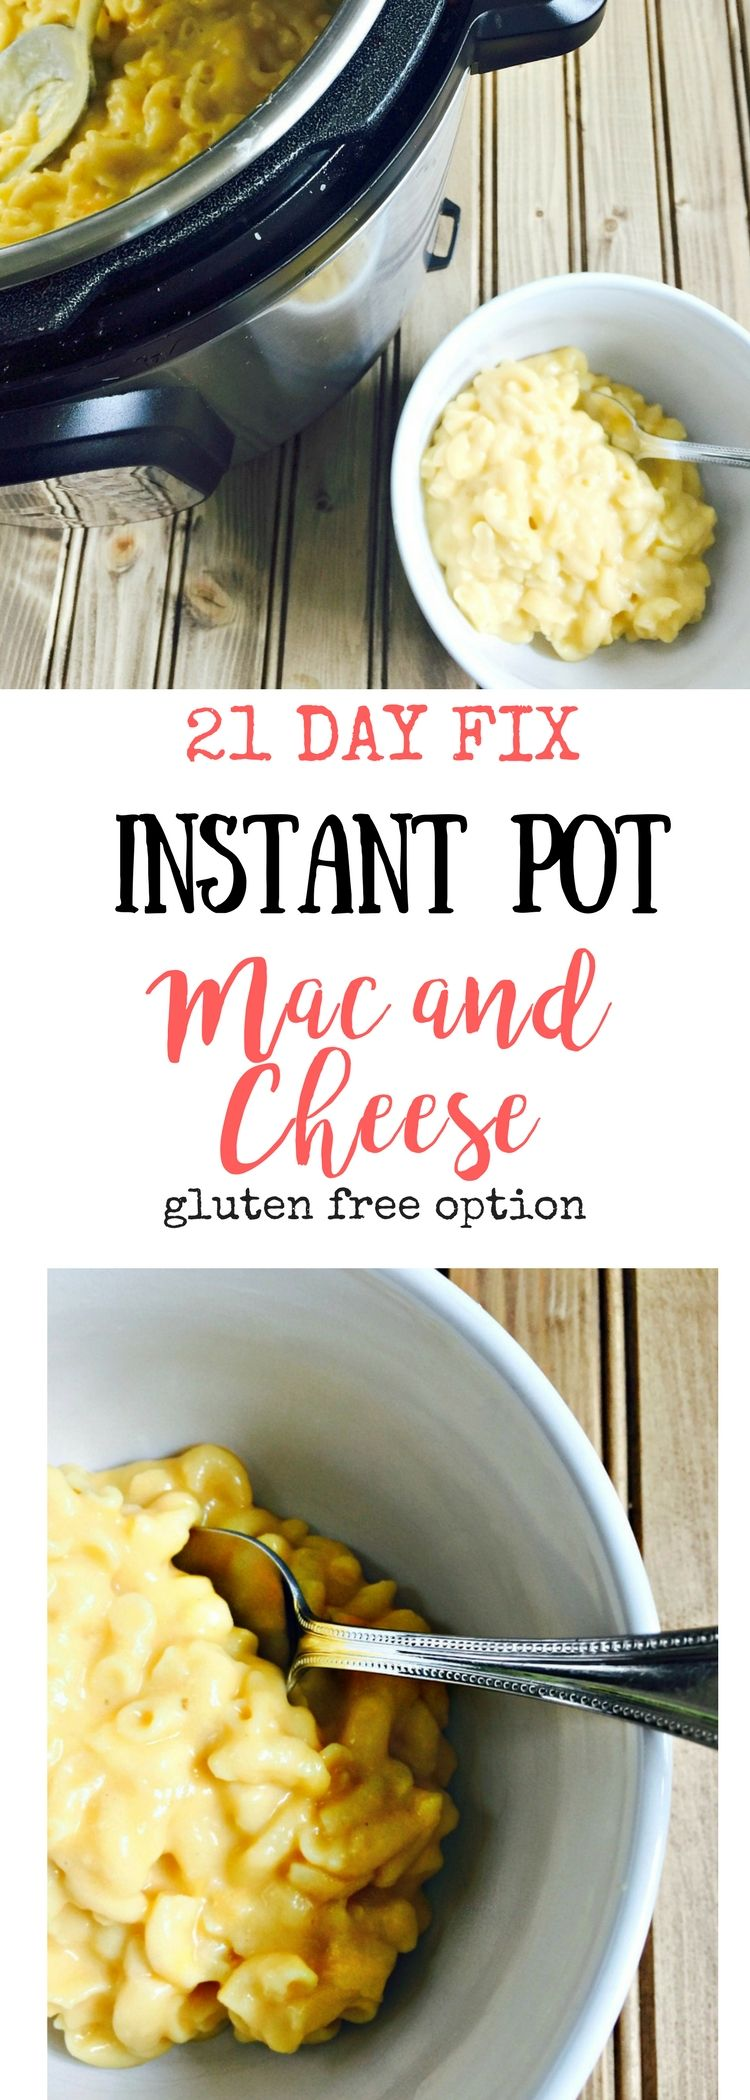 21 day fix instant pot mac and cheese